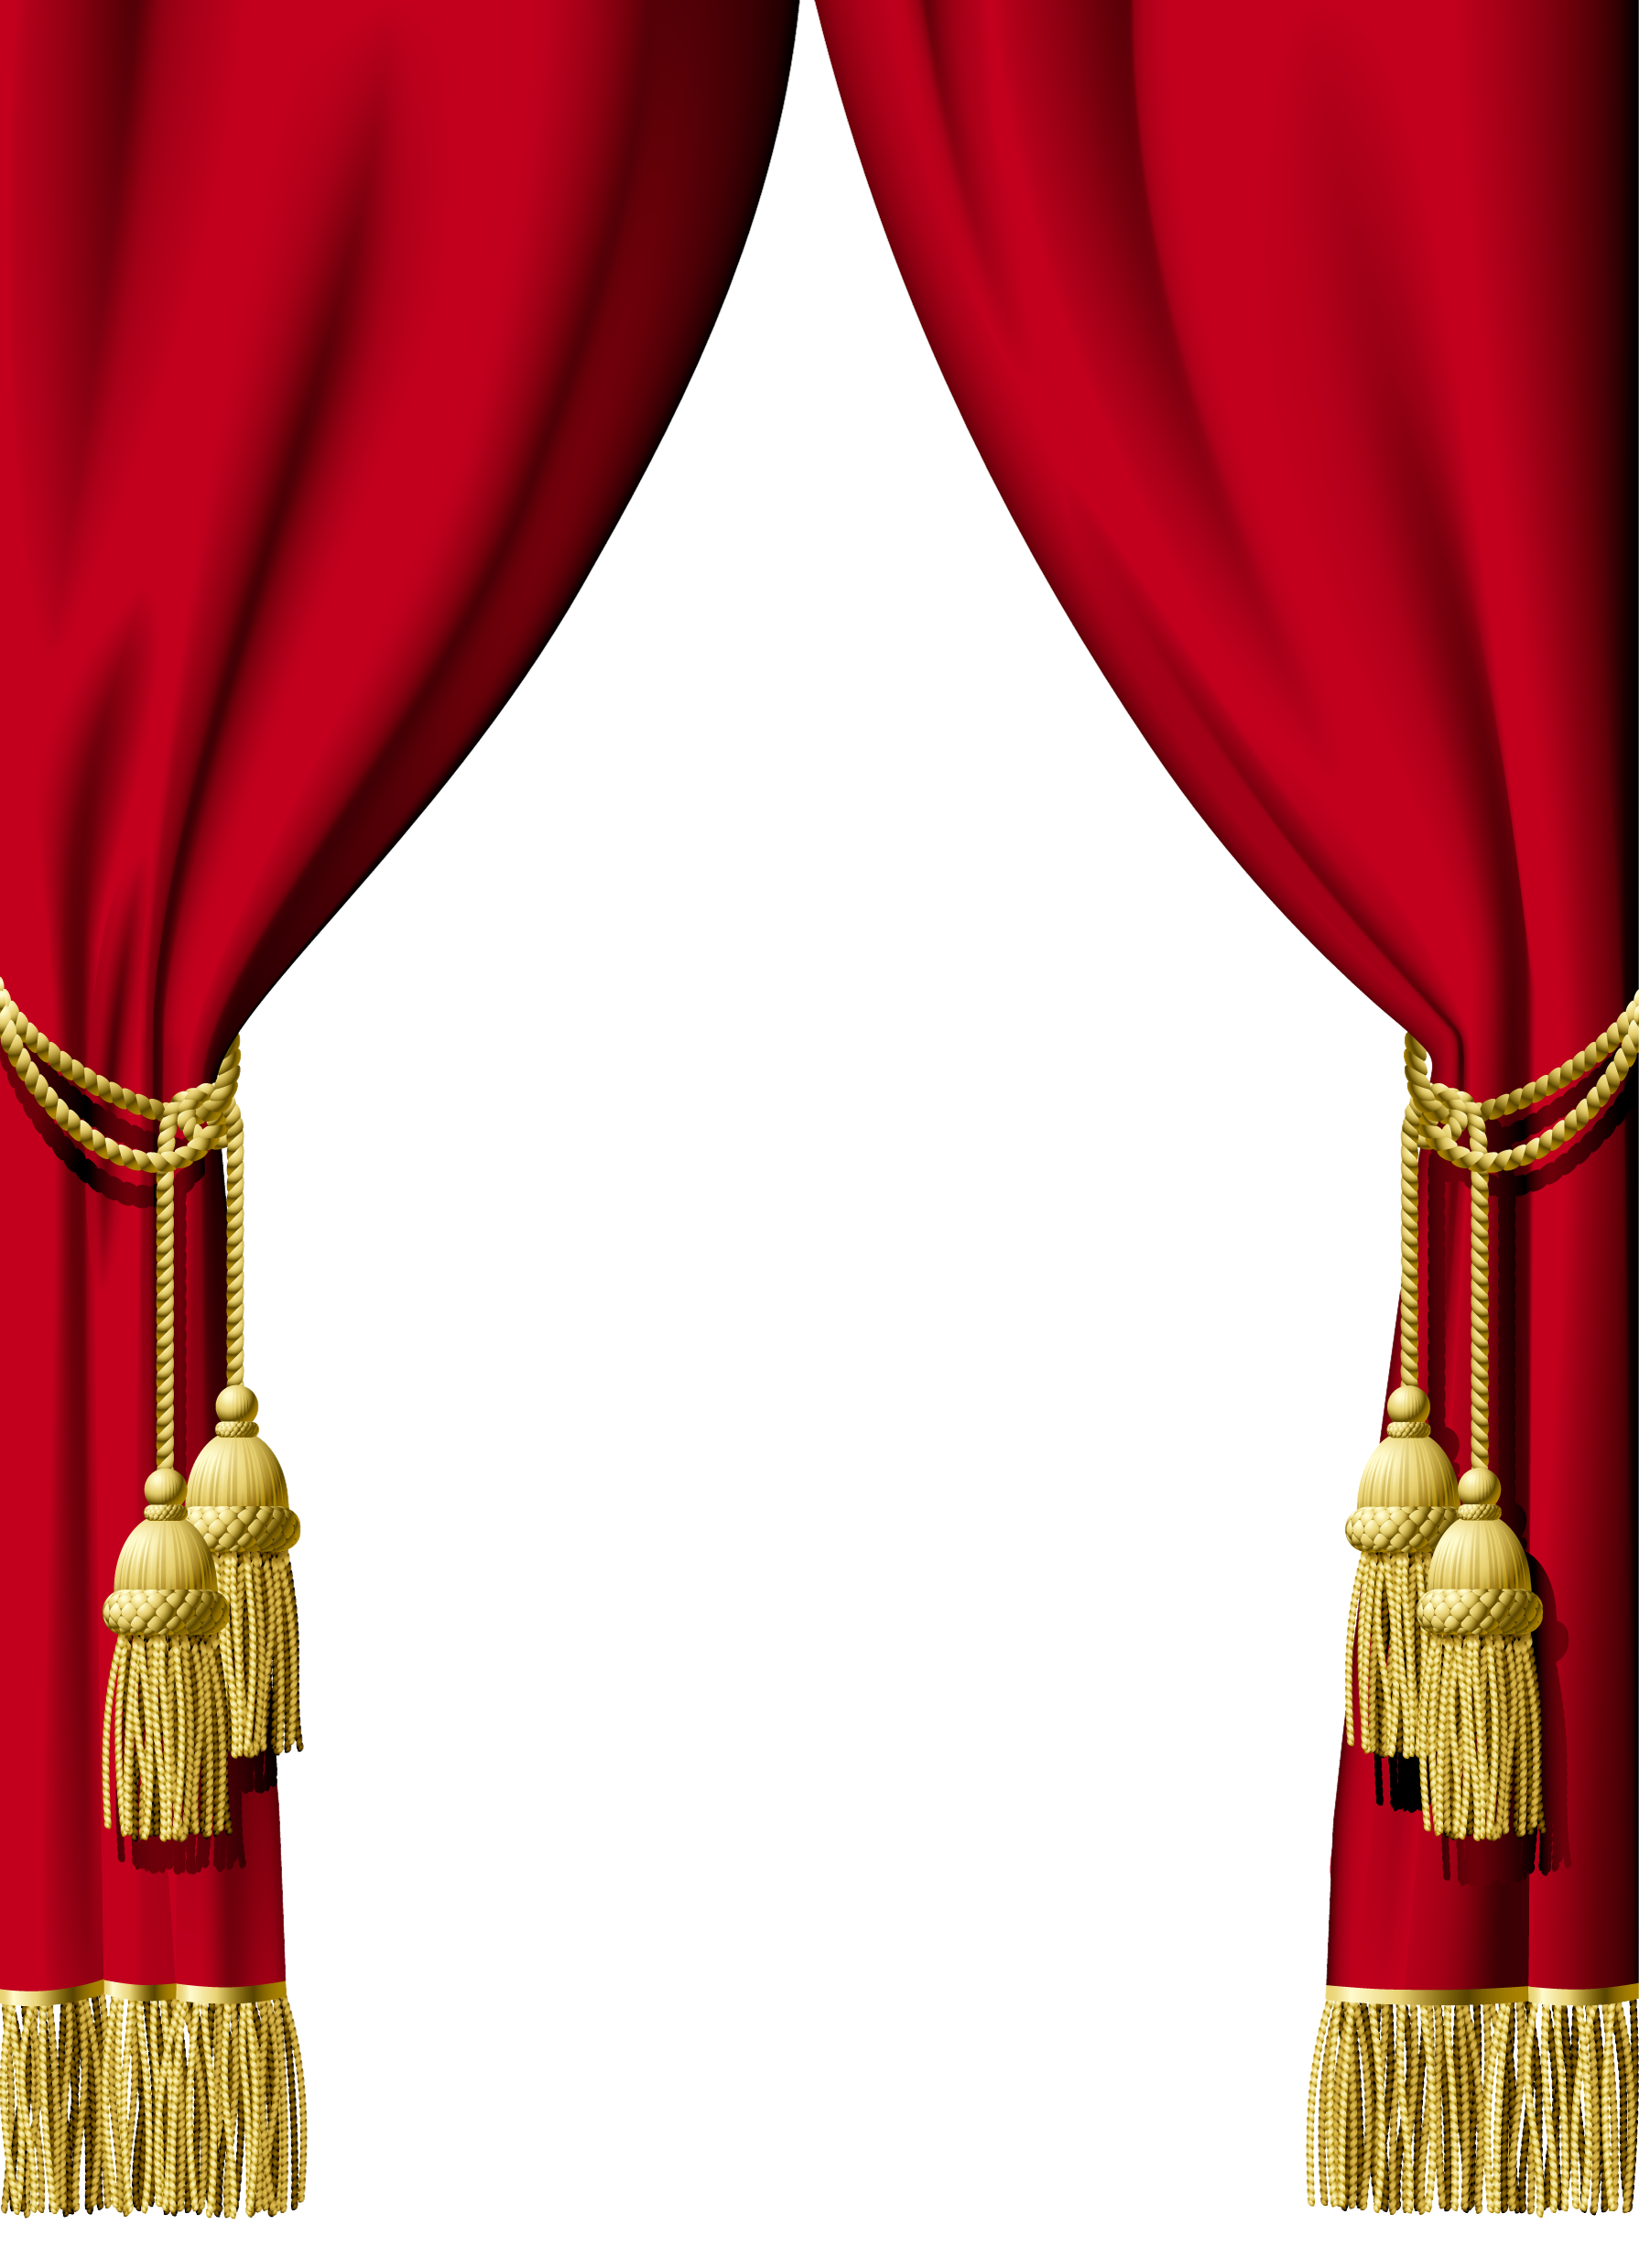 Stage clipart blue curtain. Curtains png images free